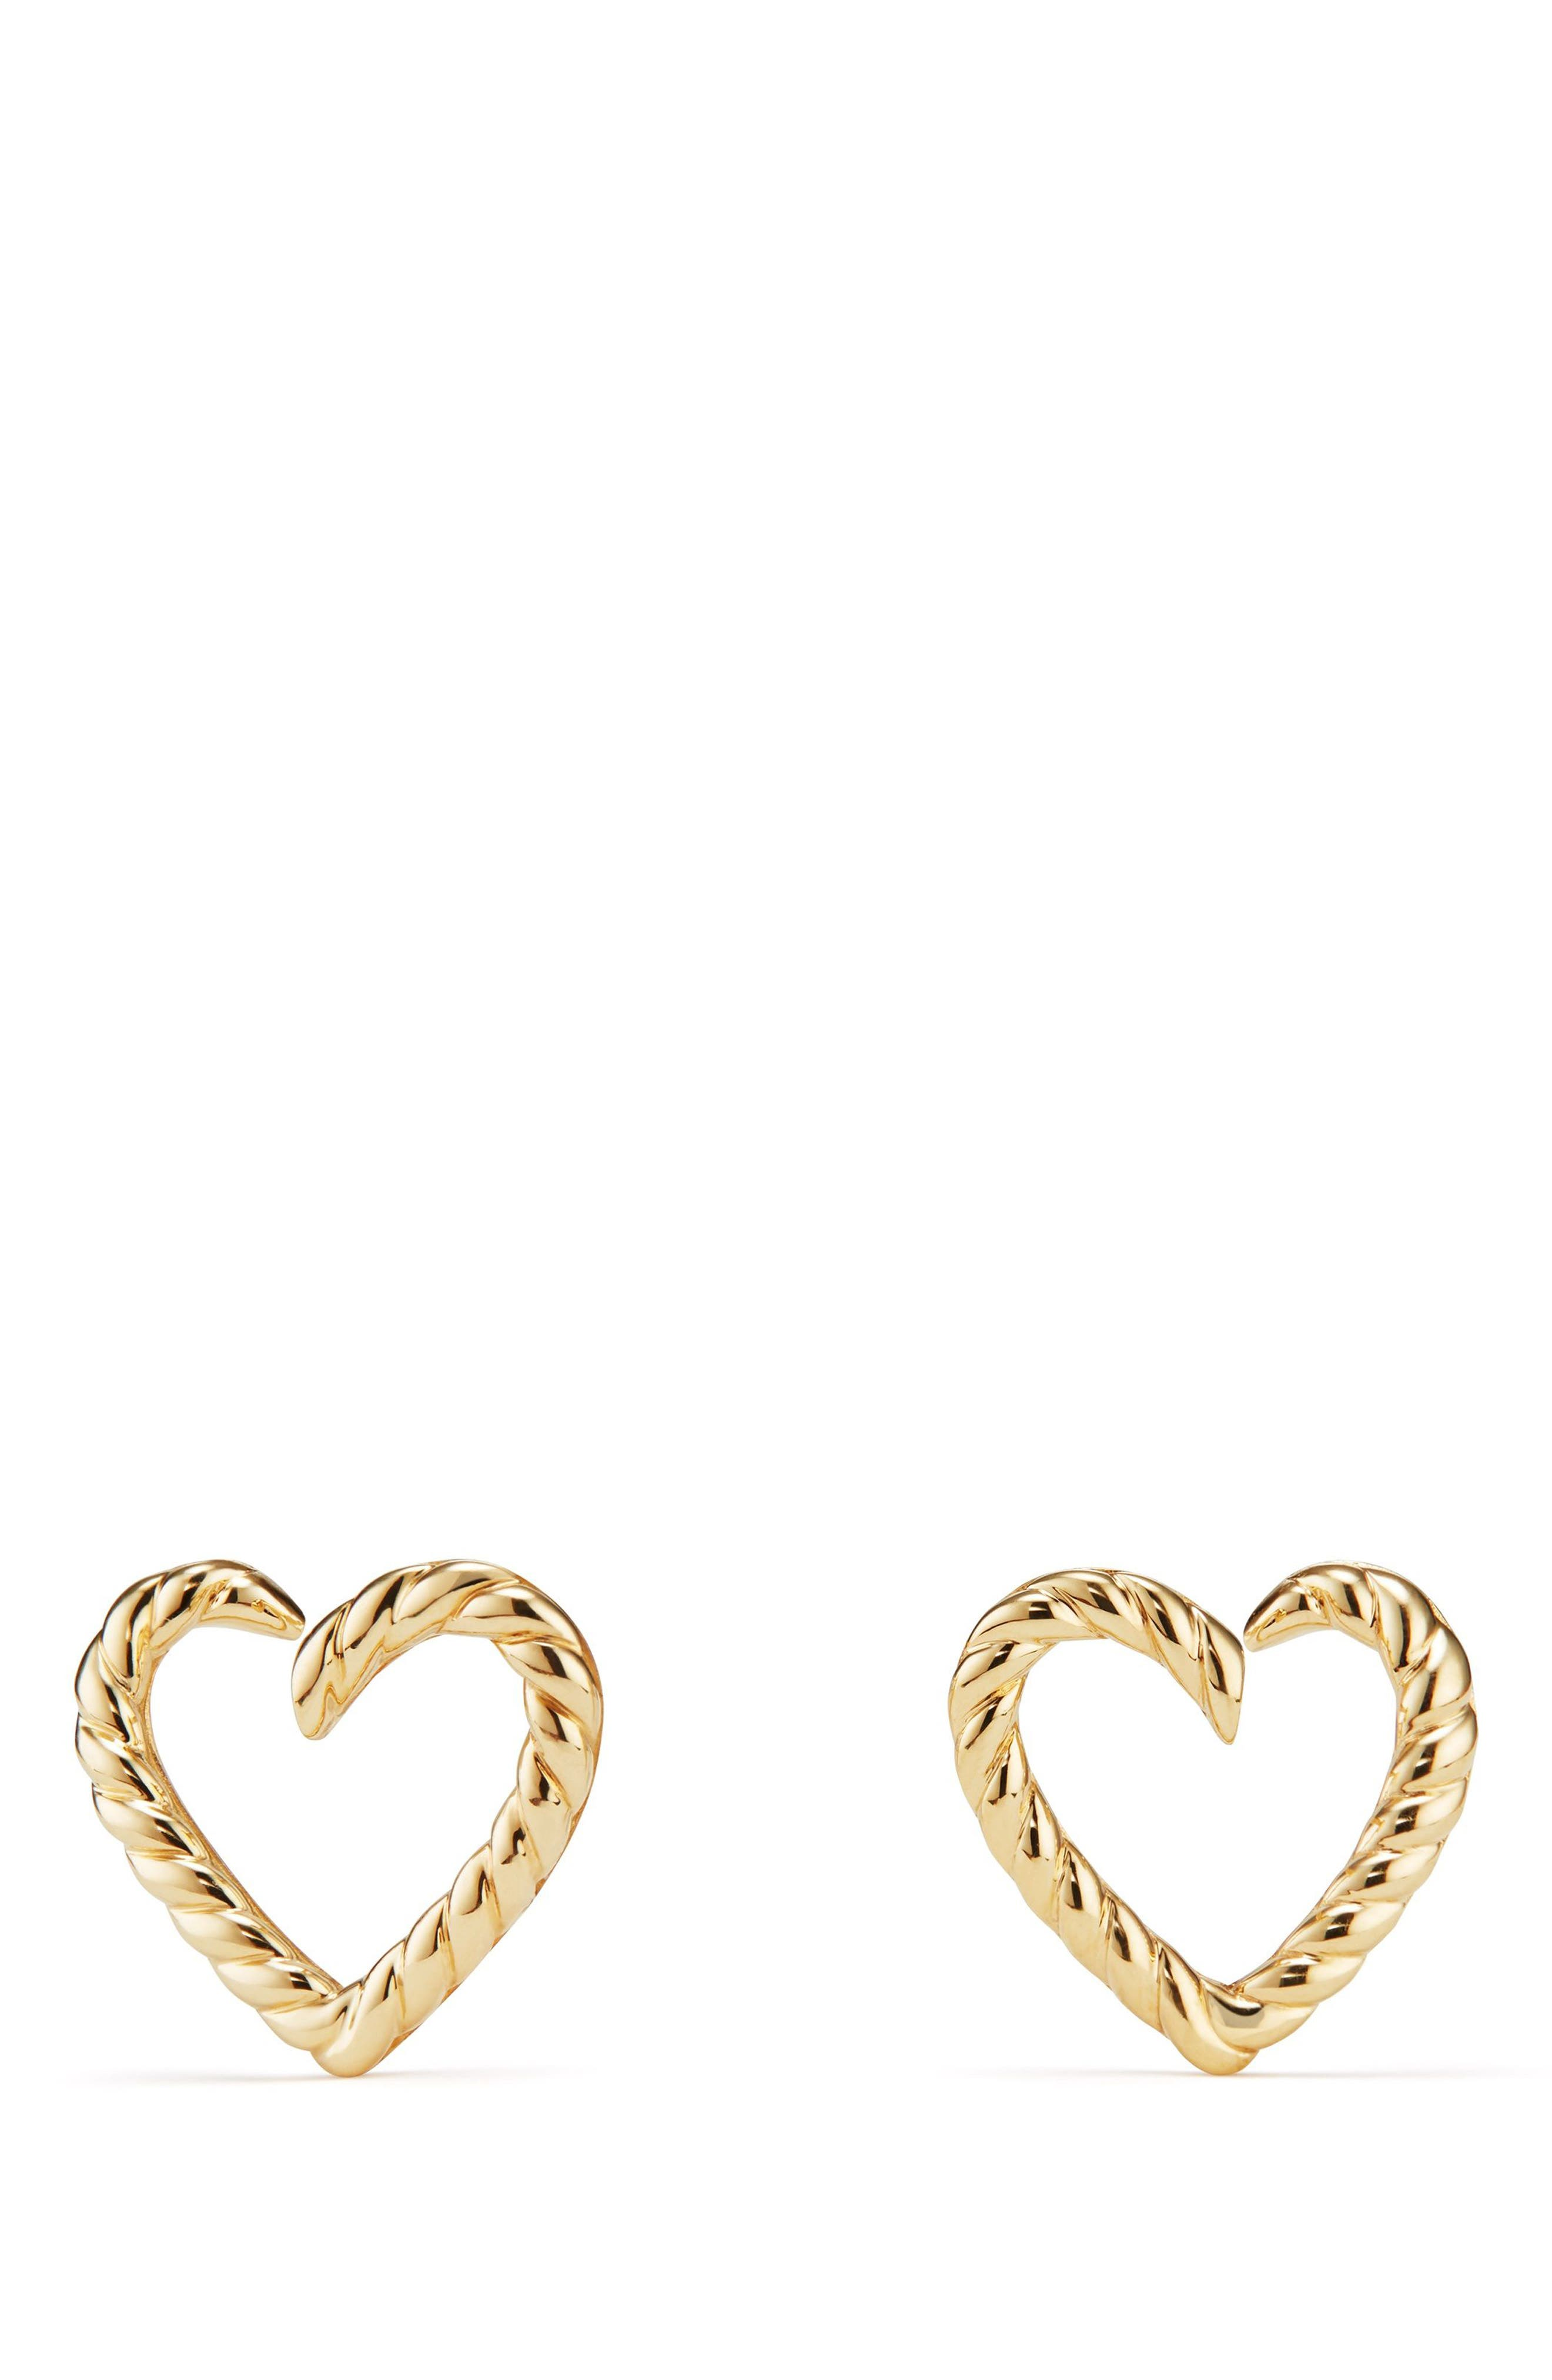 Main Image - David Yurman Cable Heart Earring in 18K Gold